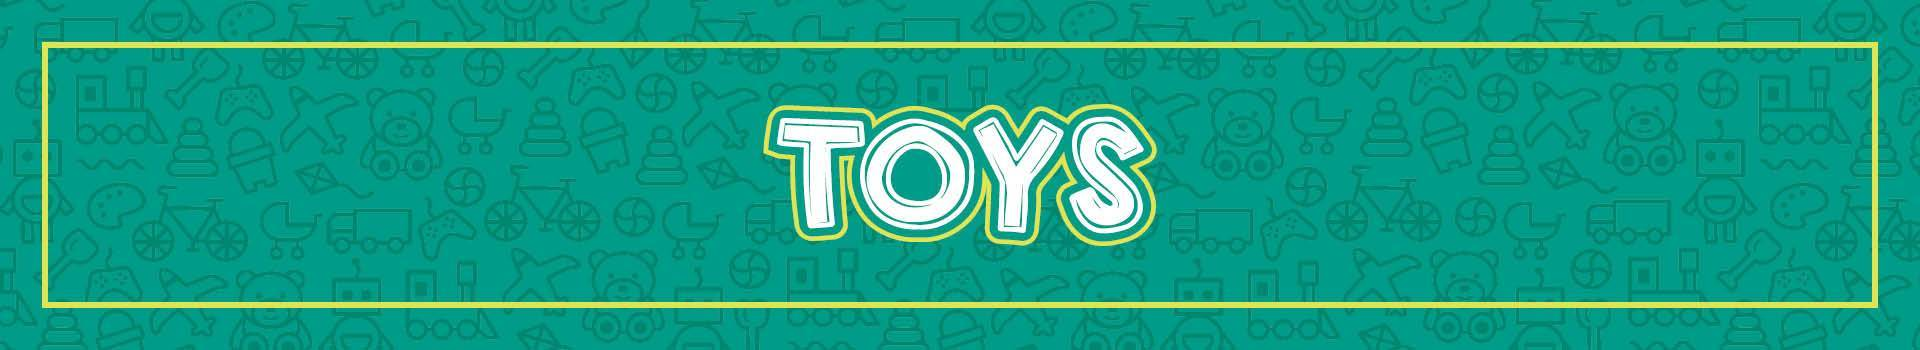 Toys, Fun & Gaming Trends | TOYS